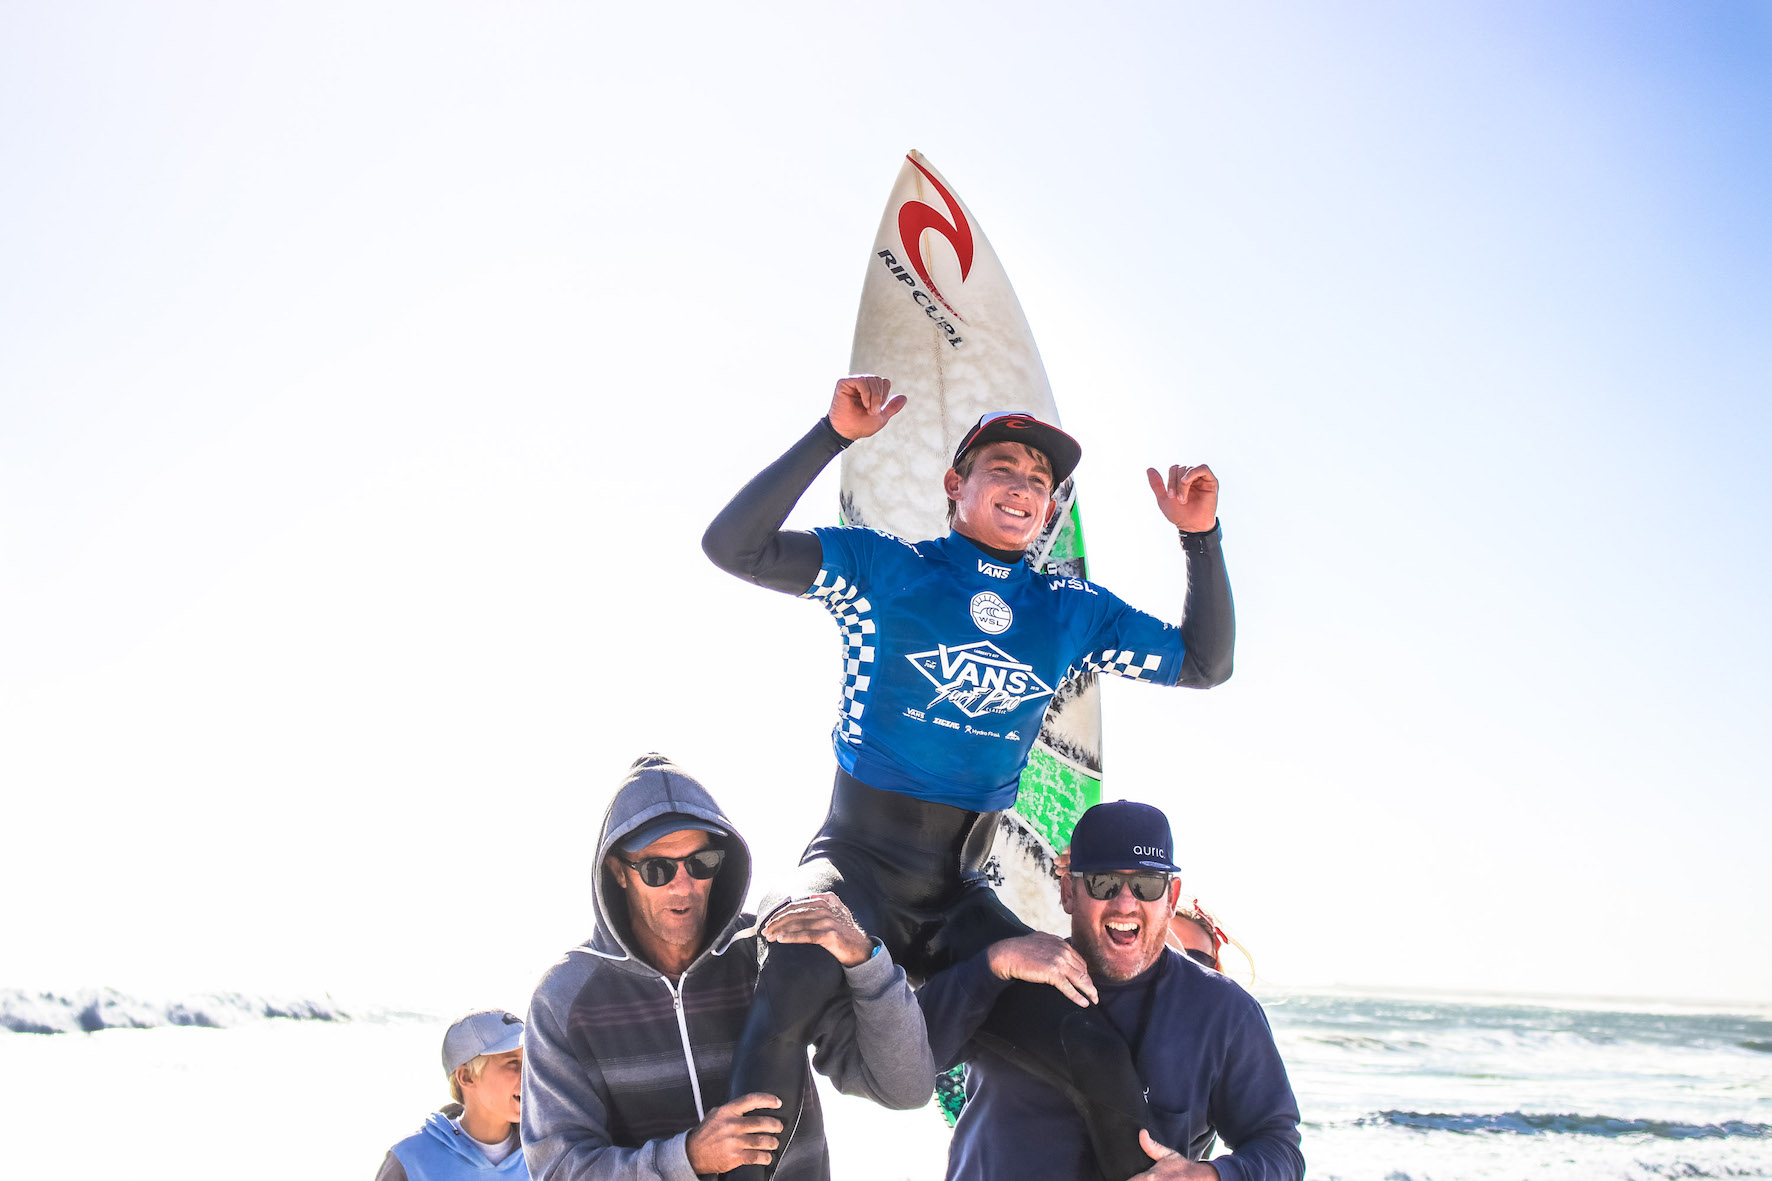 Matt McGillivray surfing his way to victory at the Vans Surf Pro